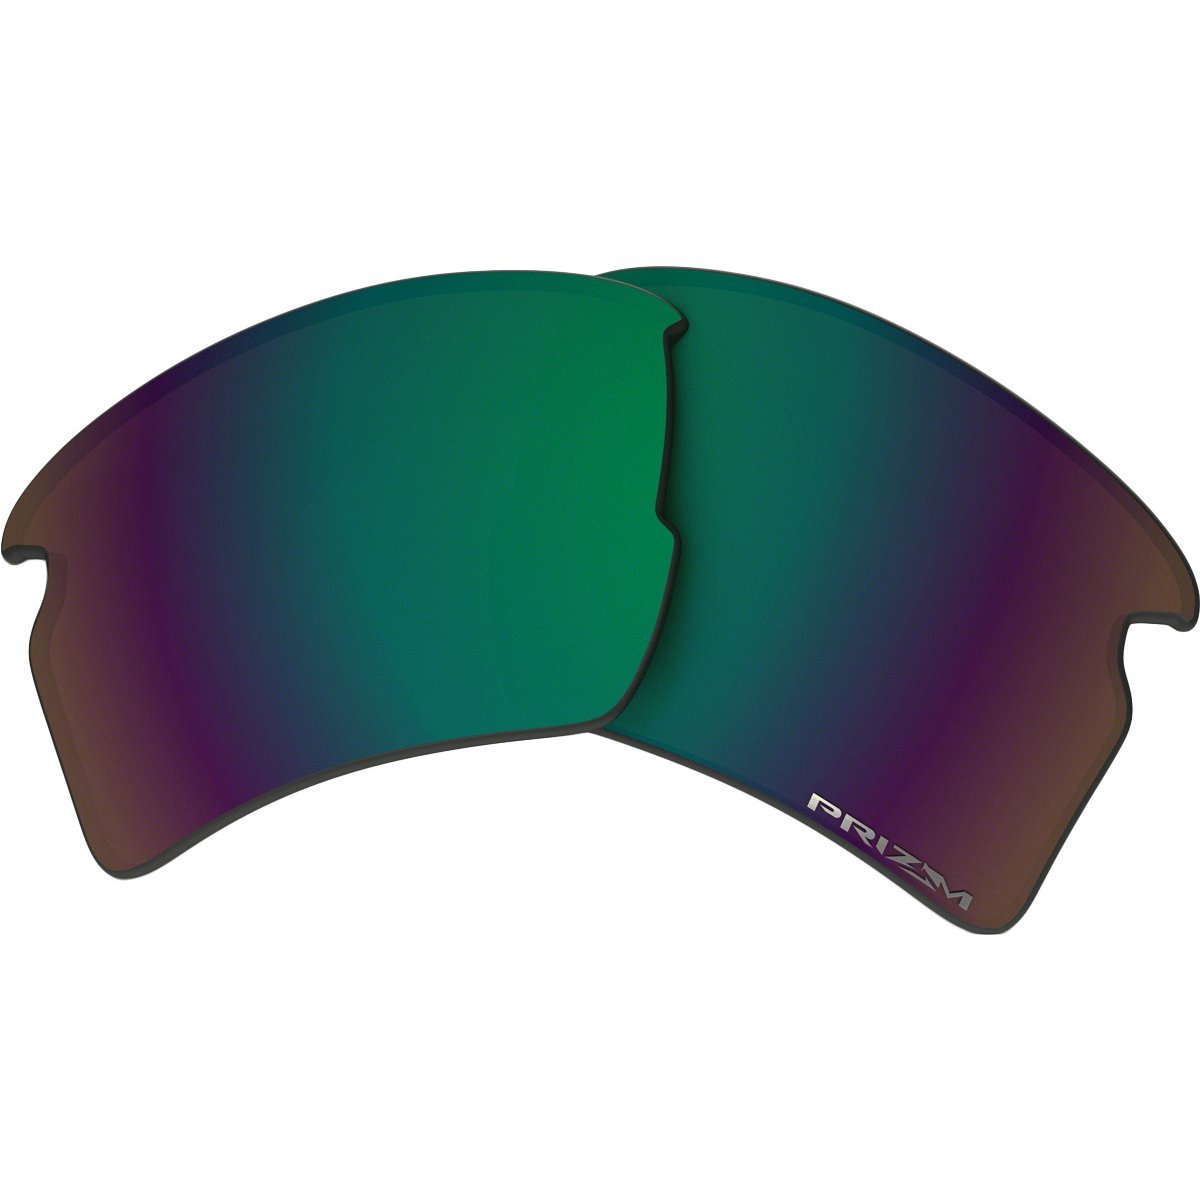 Oakley Flak 2.0 XL Adult Replacement Lens Sunglass Accessories - Prizm Shallow Water Polarized / One Size